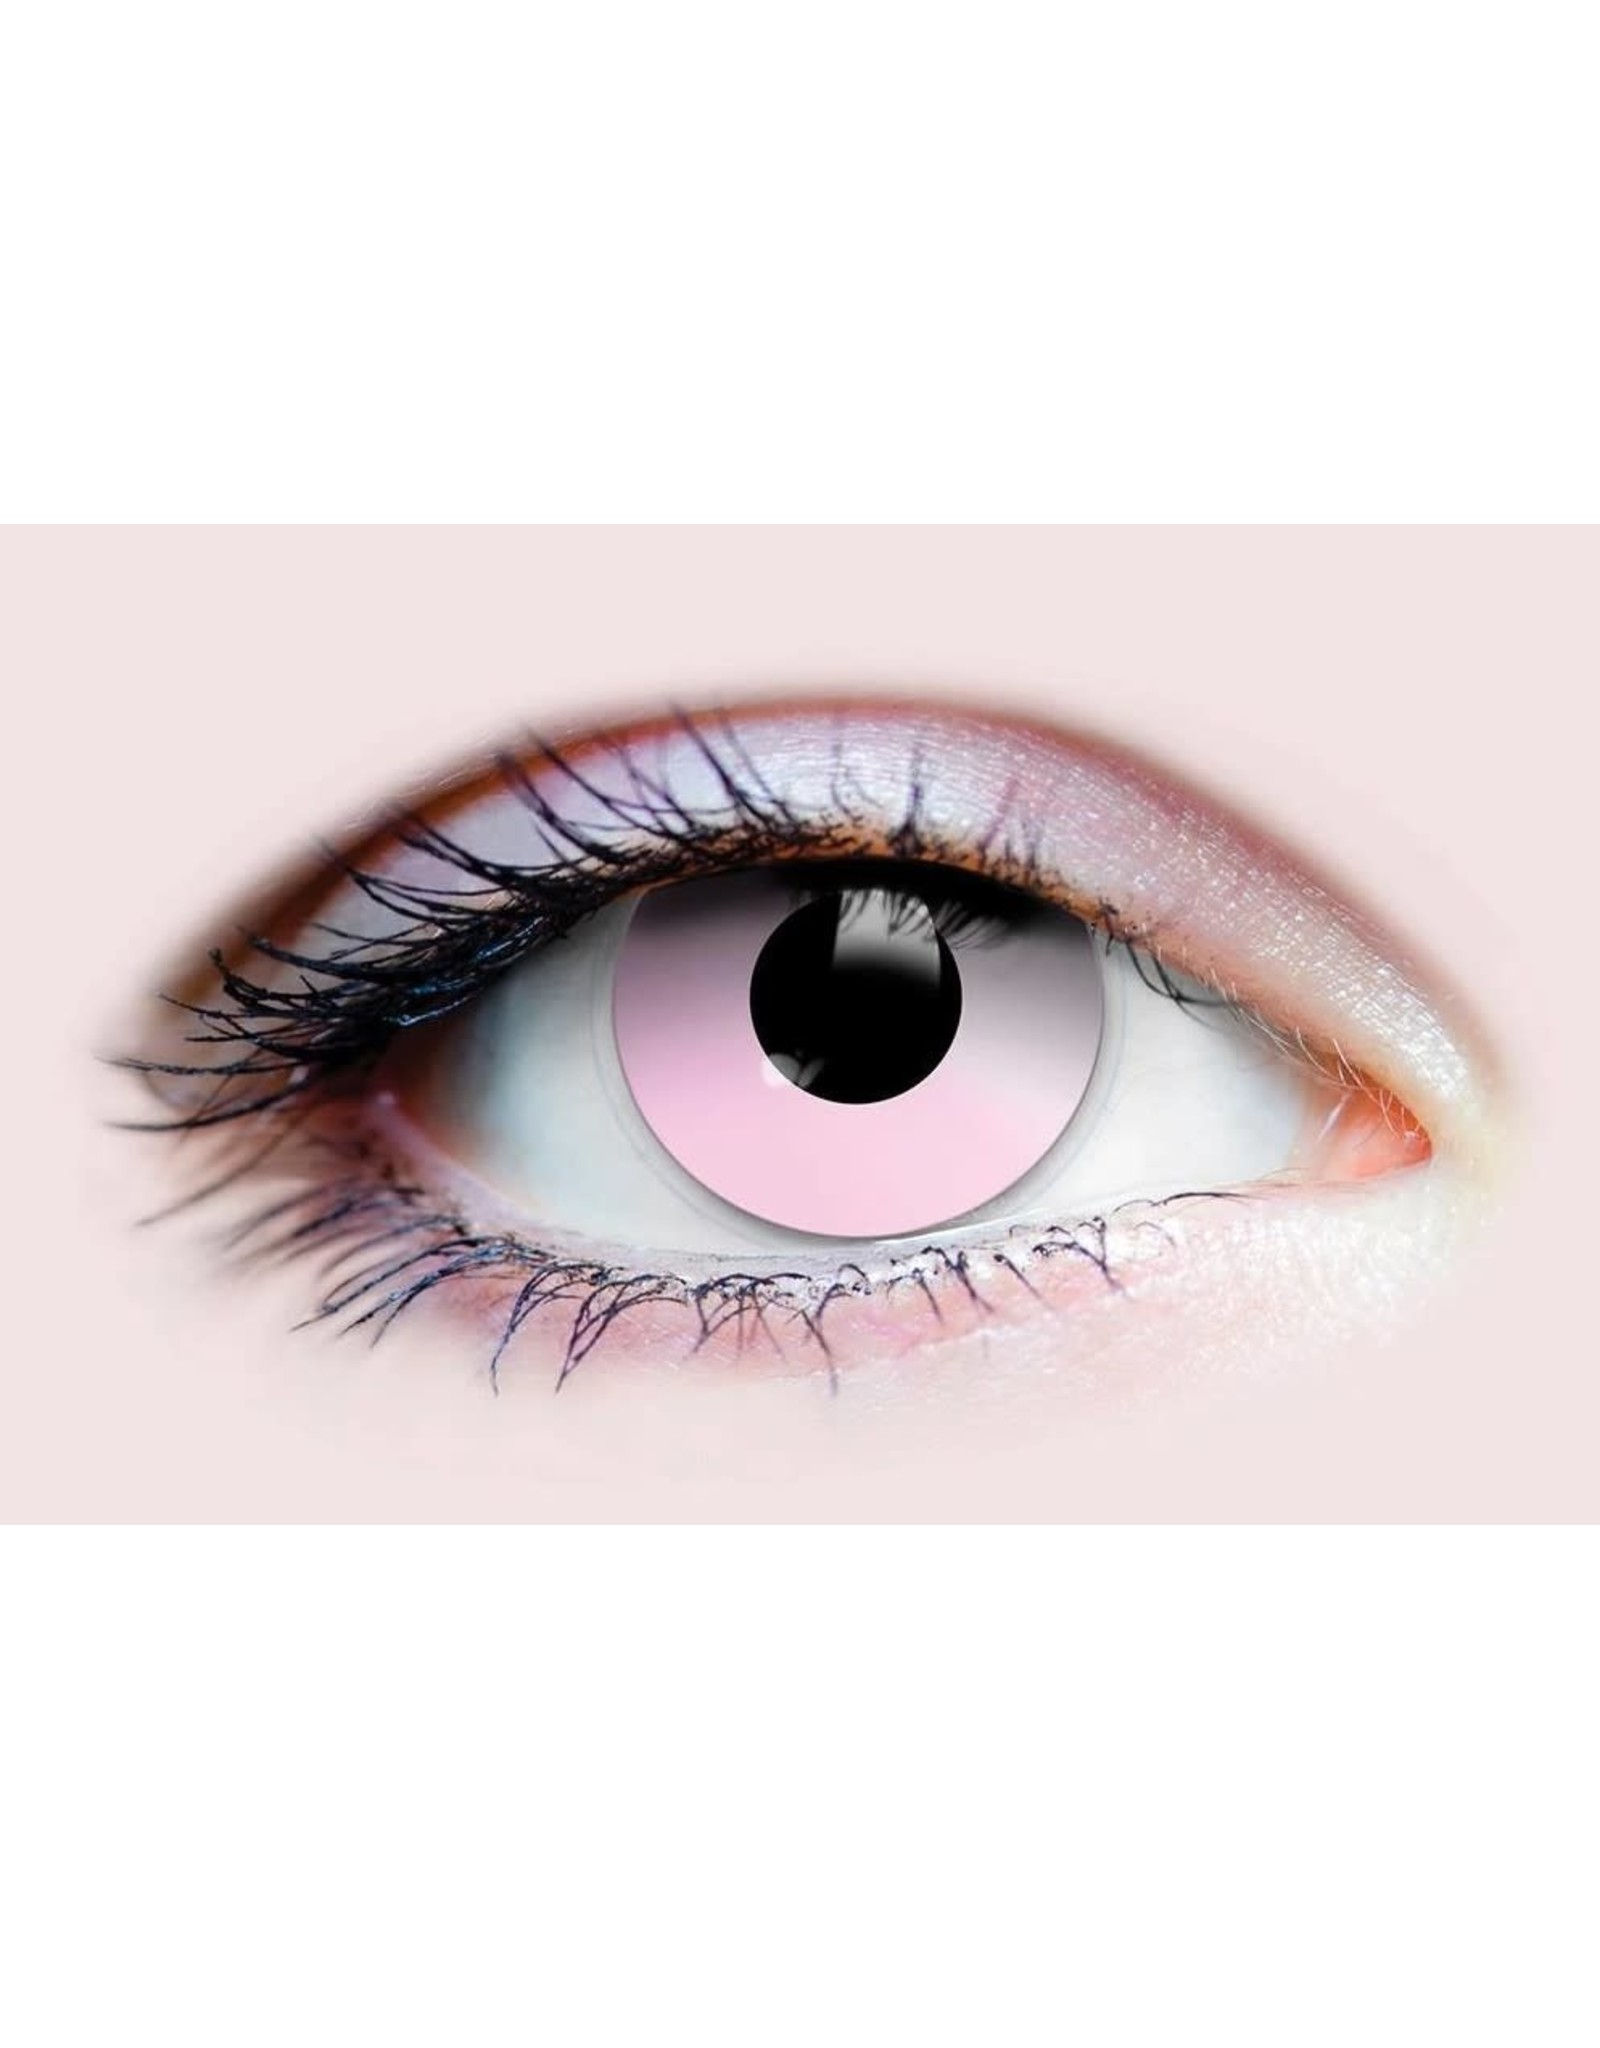 Primal Costume Contact Lenses - Cotton Candy